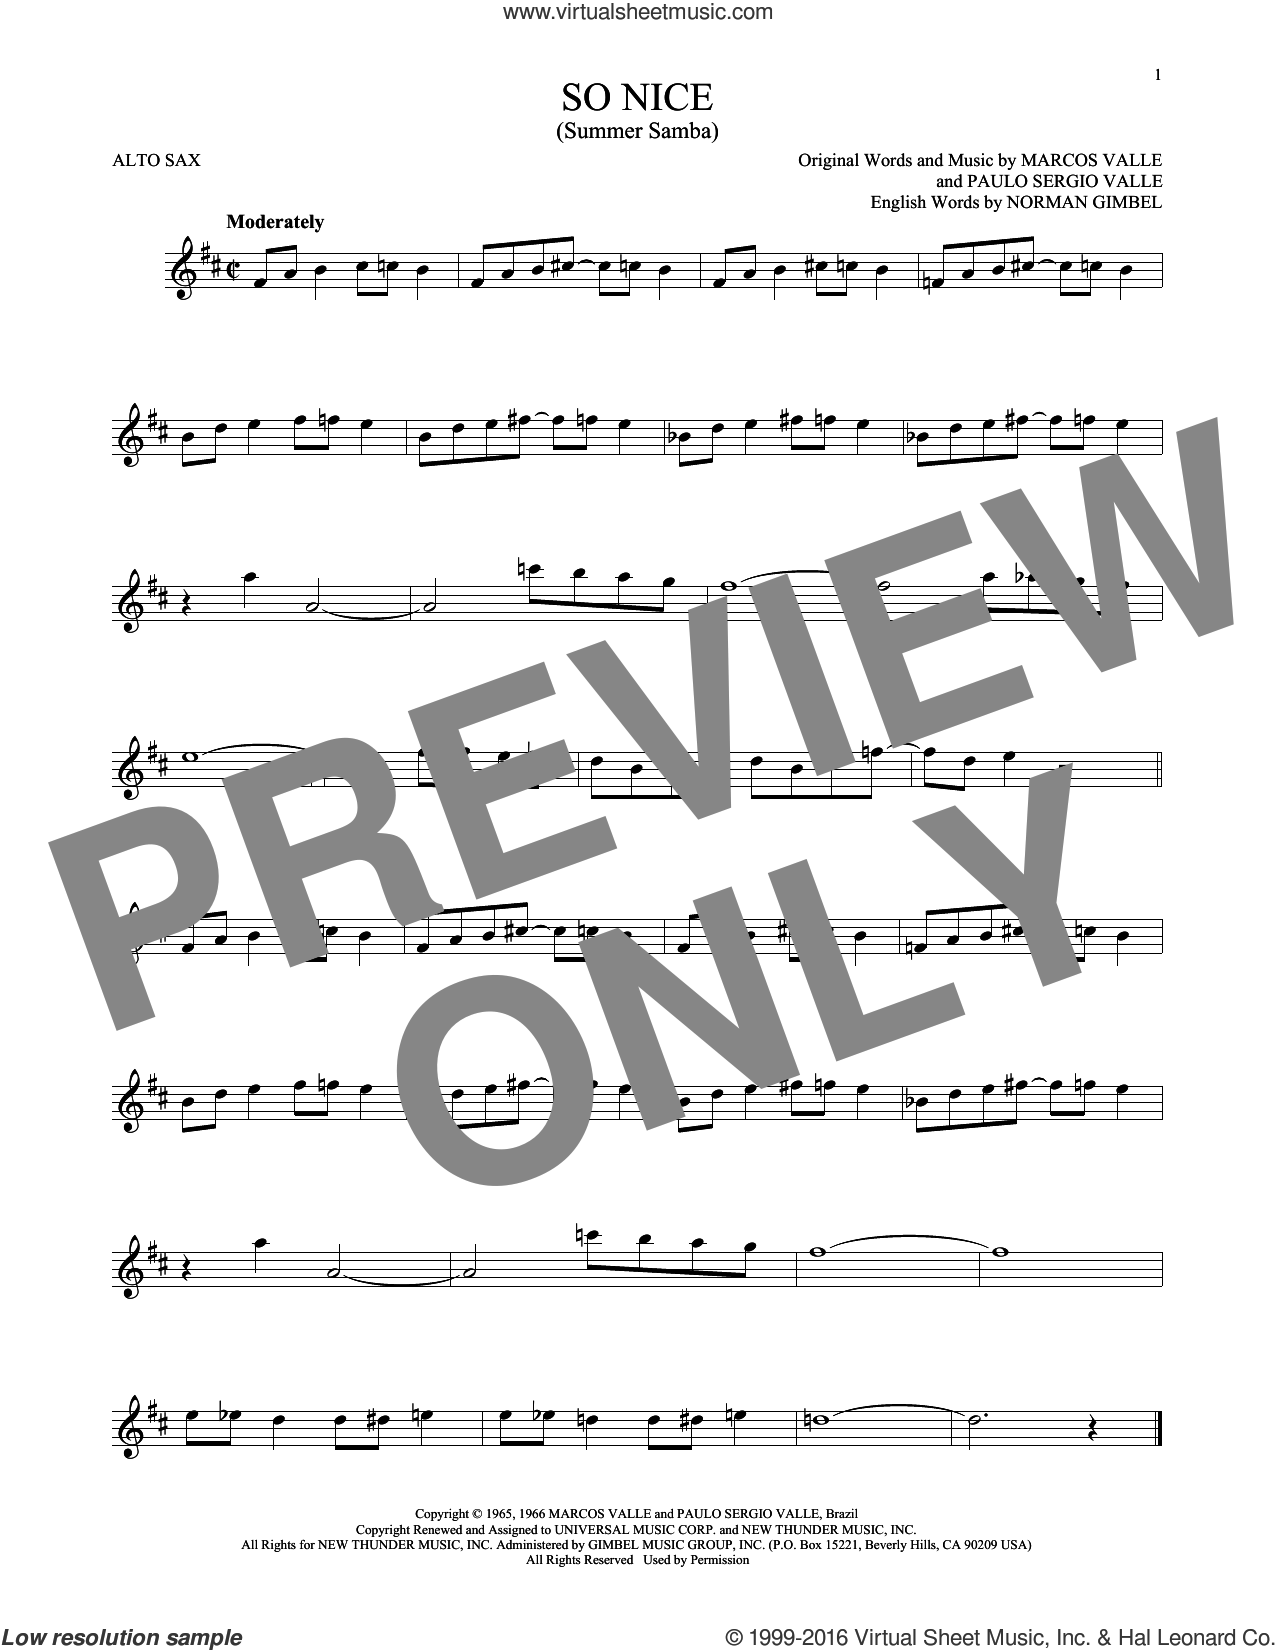 So Nice (Summer Samba) sheet music for alto saxophone solo by Norman Gimbel, Walter Wanderley, Marcos Valle and Paulo Sergio Valle, intermediate